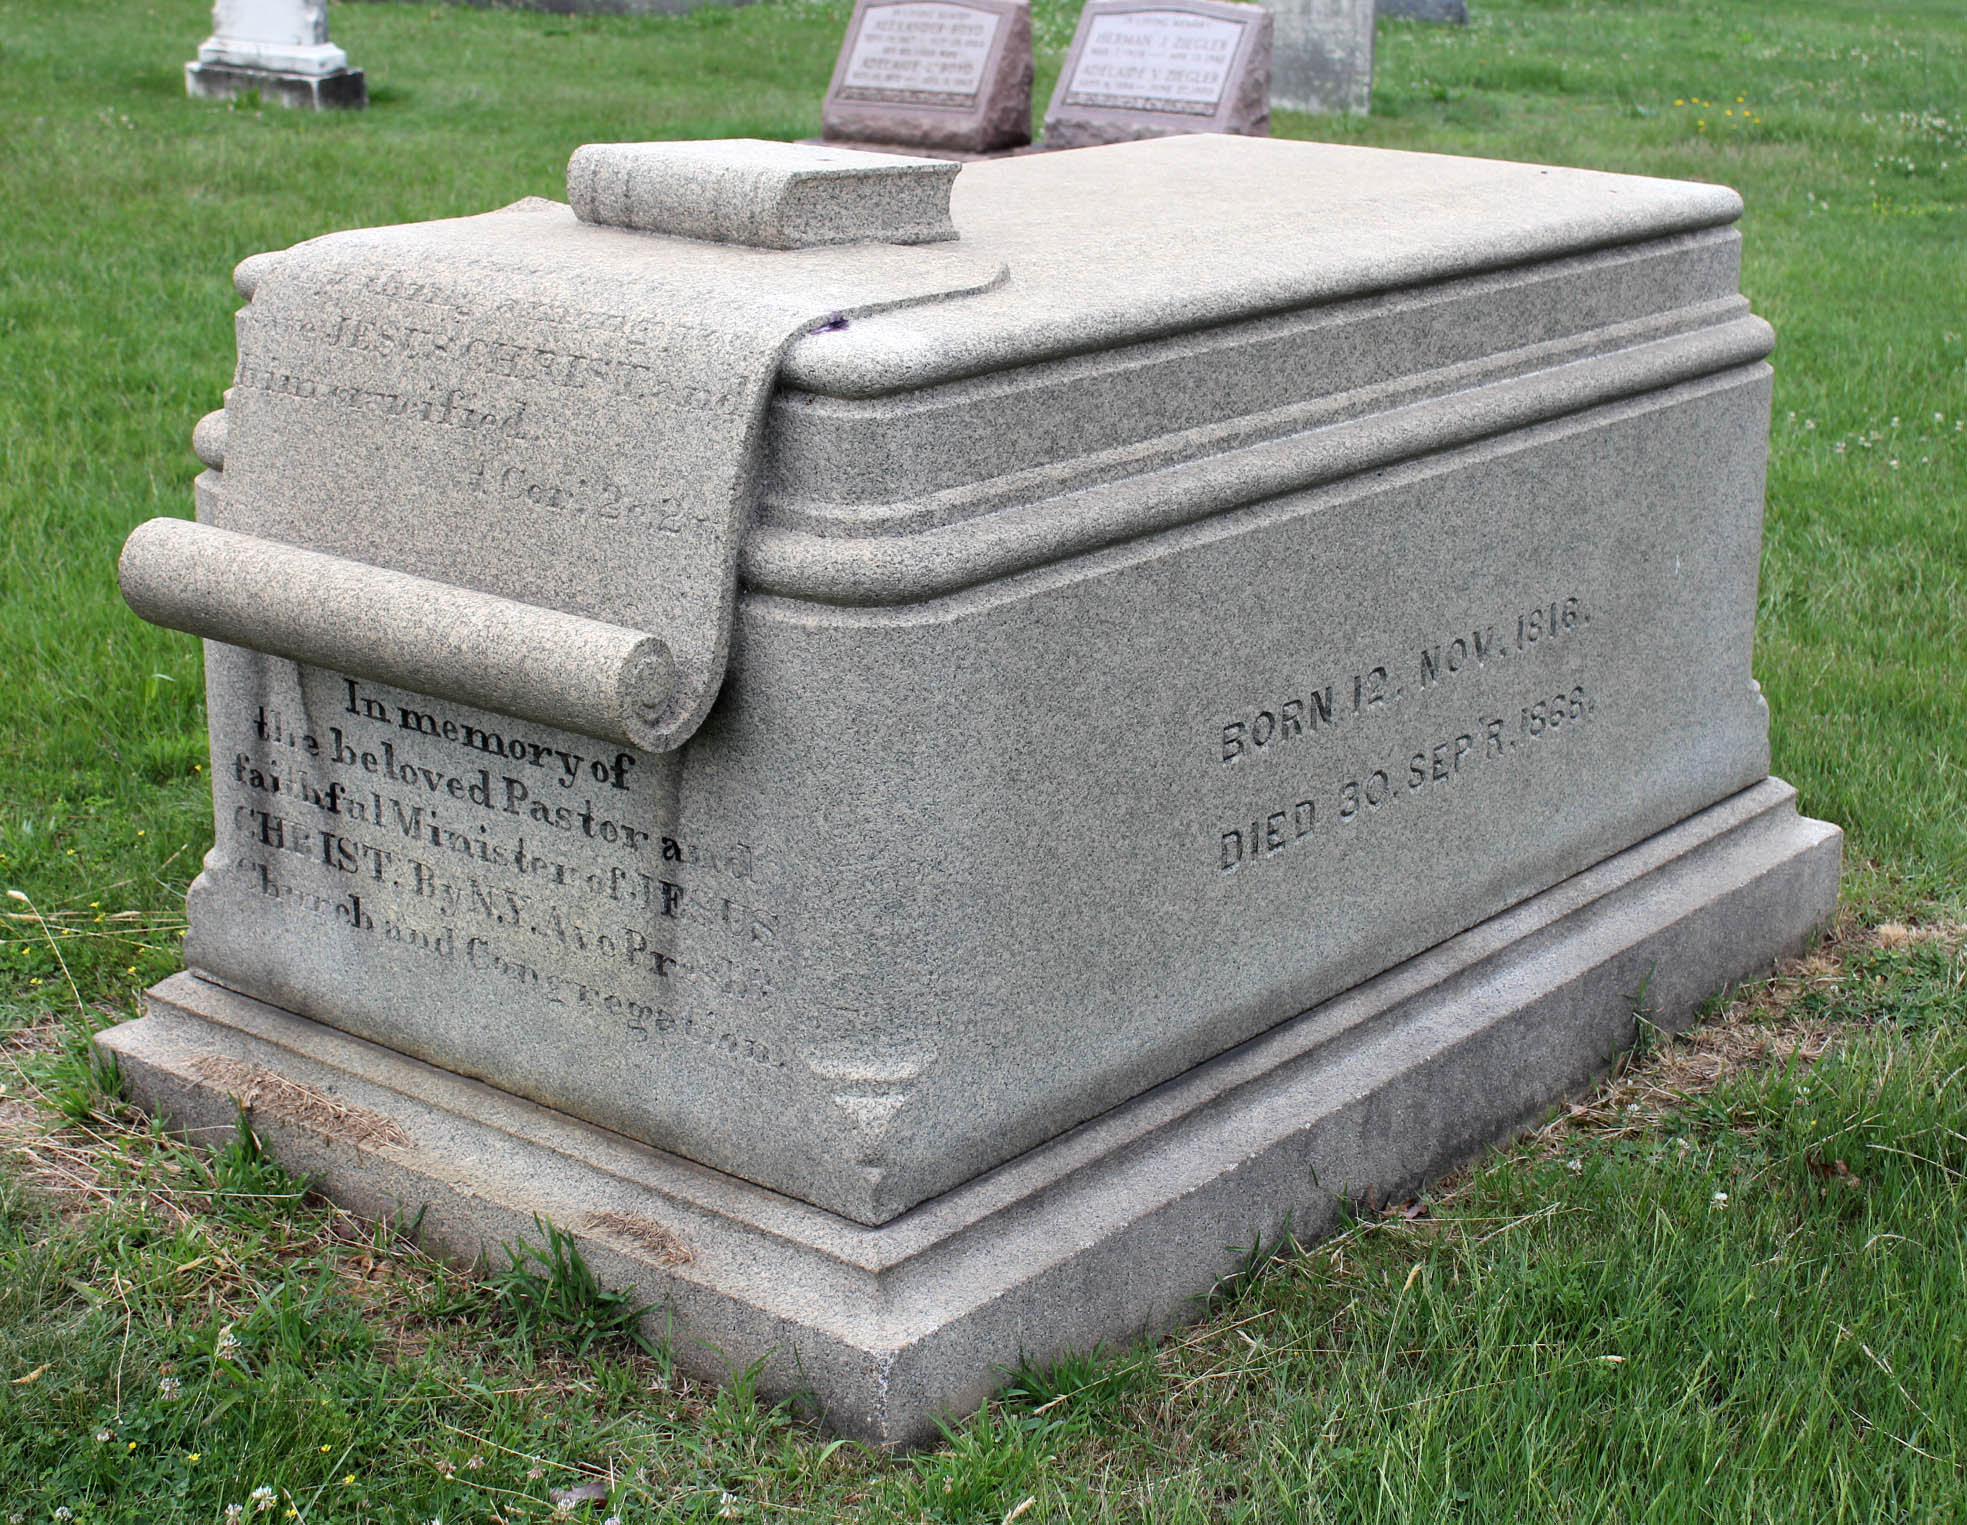 Phineas Densmore Gurley is buried at Glenwood Cemetery, Washington, District of Columbia.